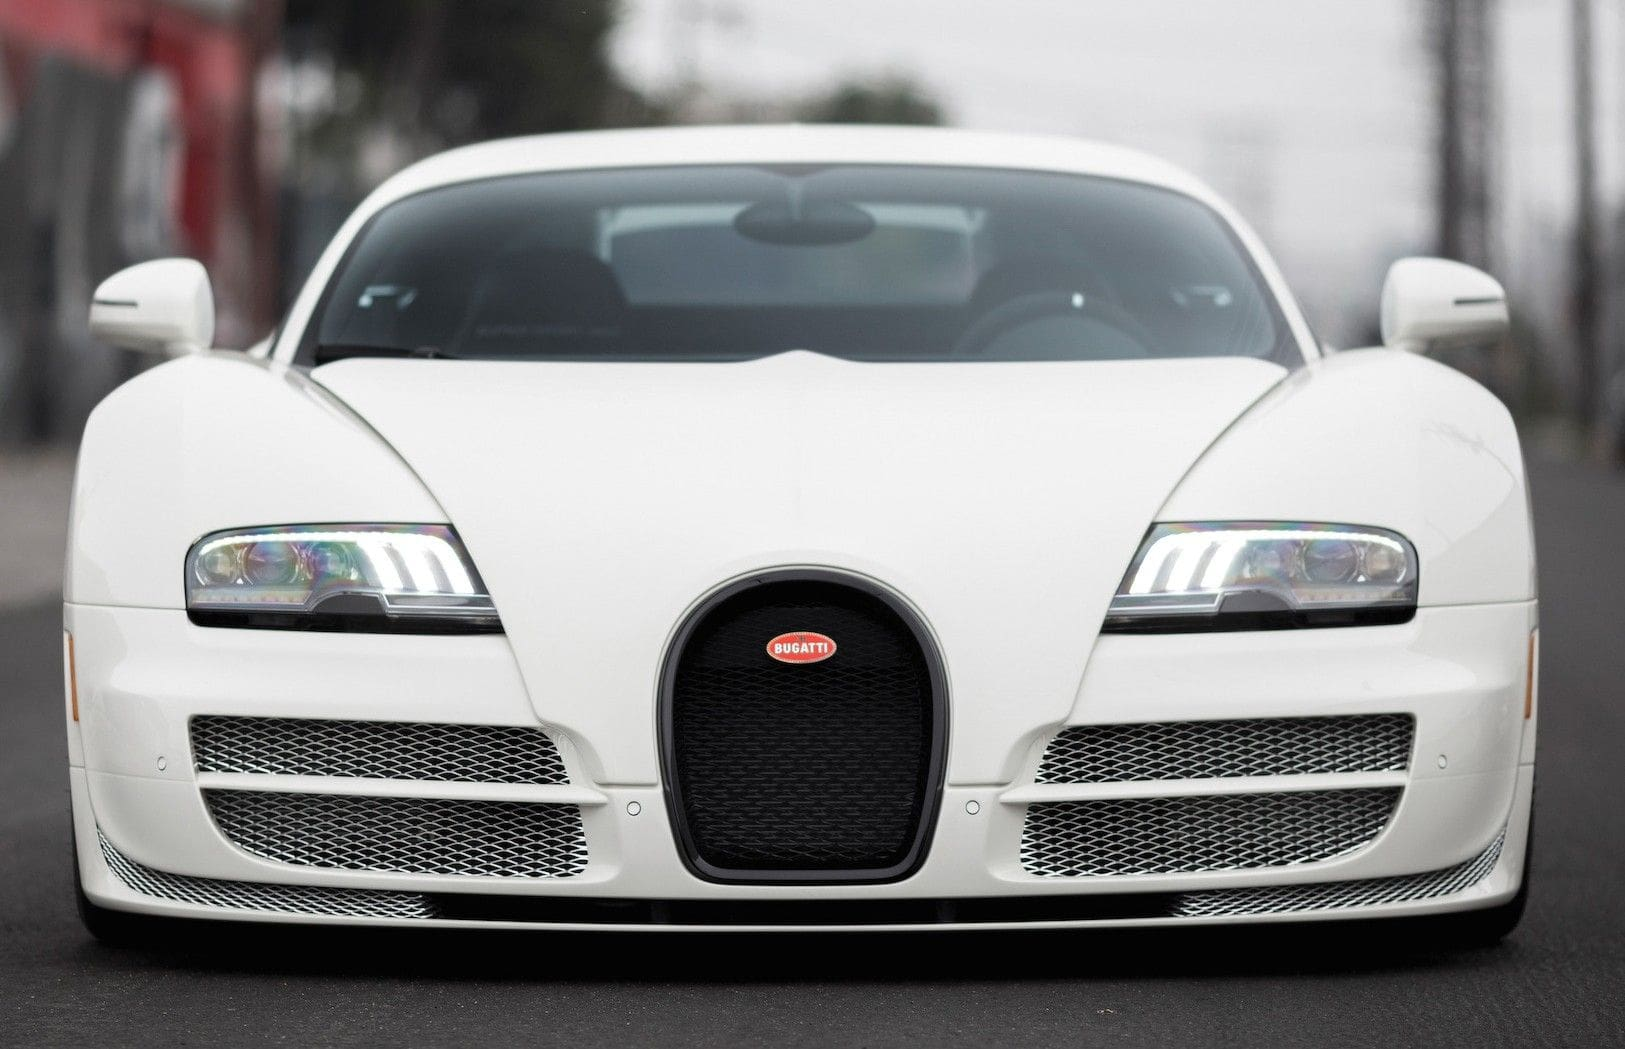 Bugatti Cars Price in India, New Car Models 2019, Photos, Specs